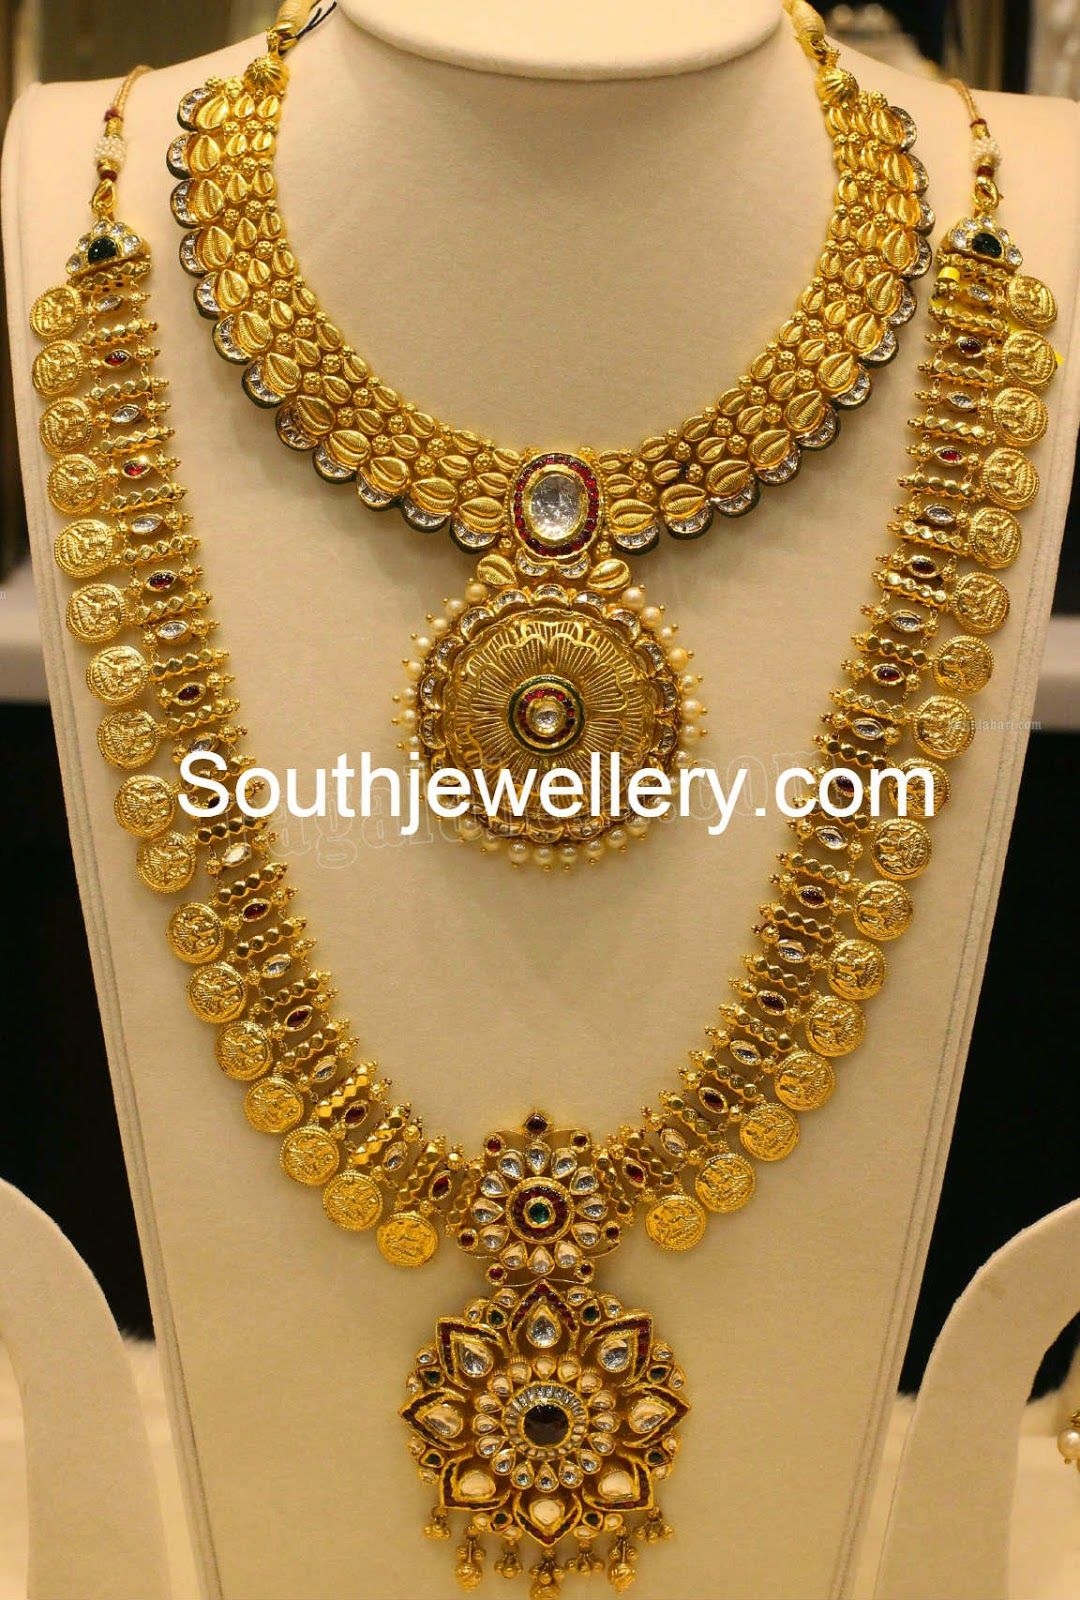 Latest gold necklace designs in grams pachi necklace latest jewellery - Jewellery Designs Gold Haram Designs By Manepally